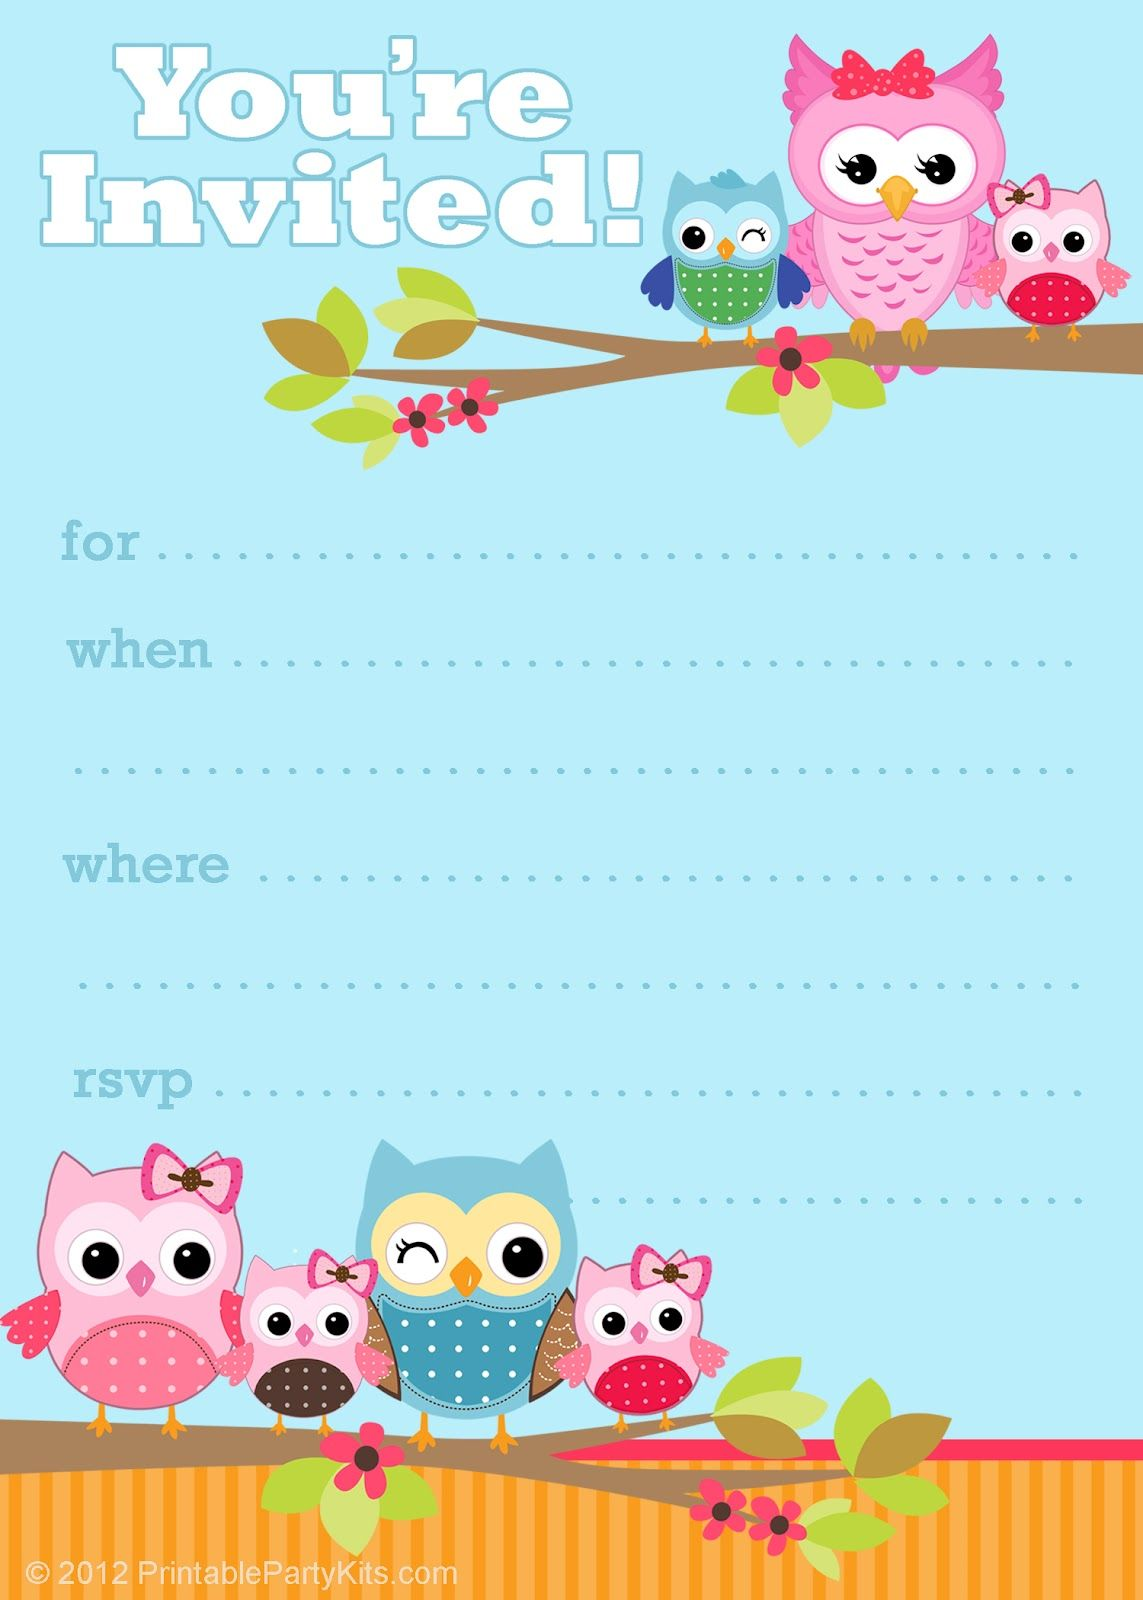 41 Printable Birthday Party Cards Invitations for Kids to Make – Party Invitations for Free